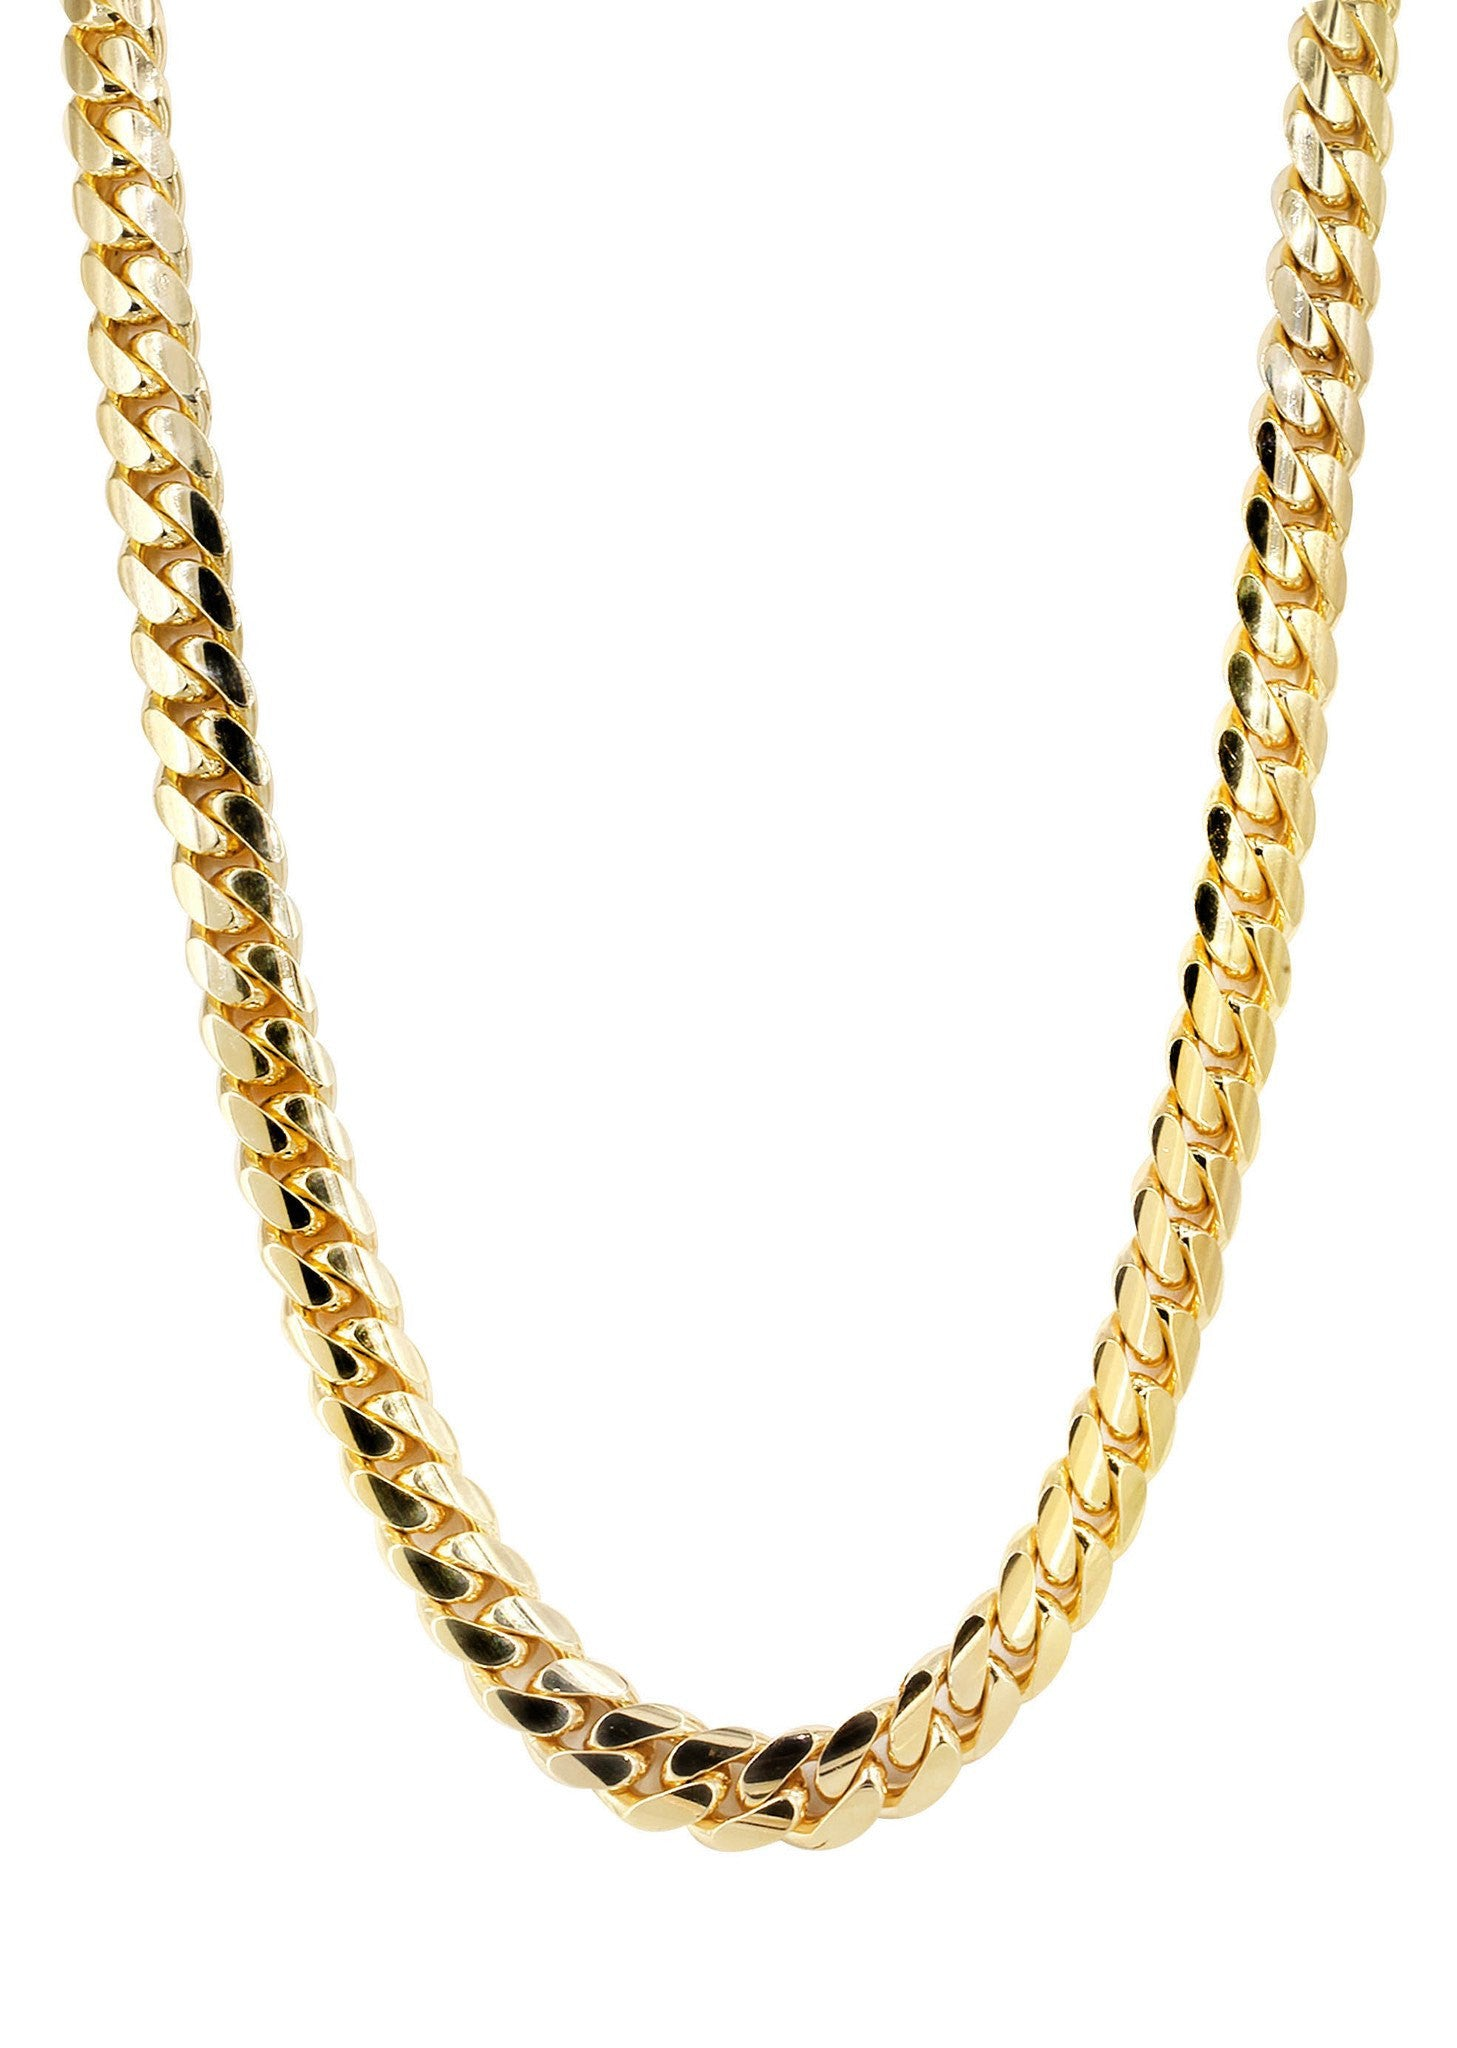 f22166902 ... Mens Chain - Solid Miami Cuban Link 10K Gold MEN'S CHAINS FROST ...